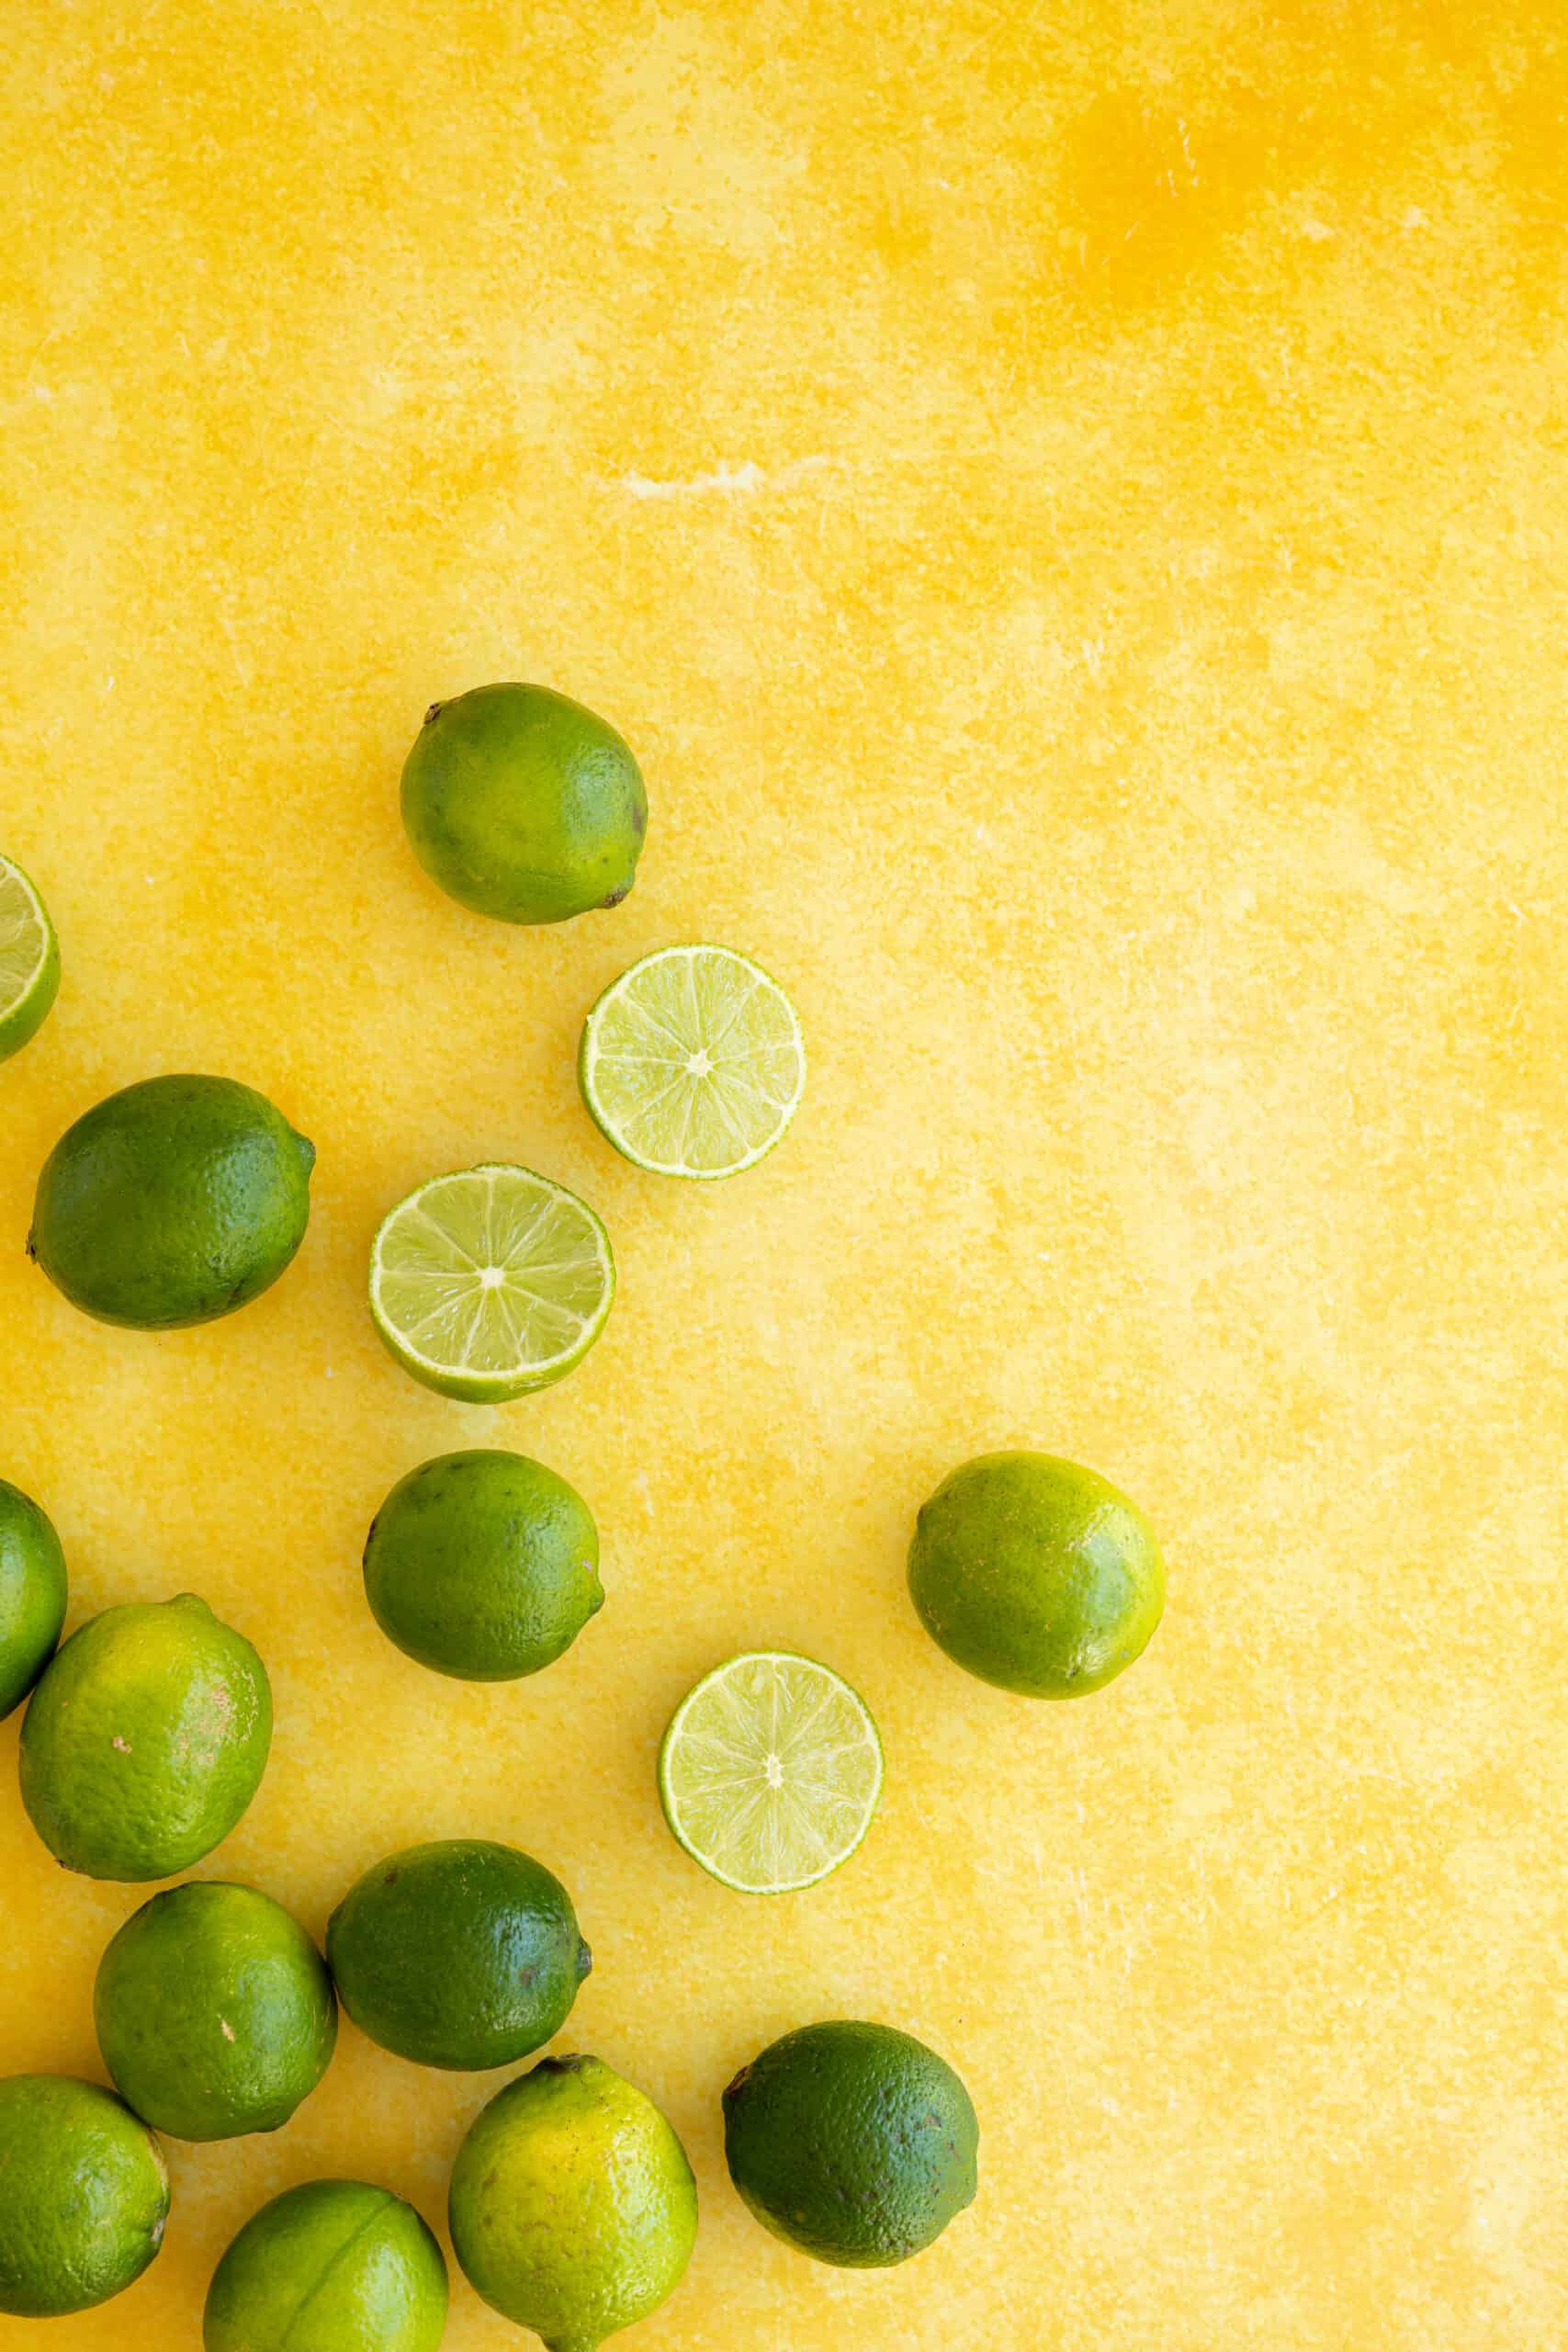 limes on a yellow table